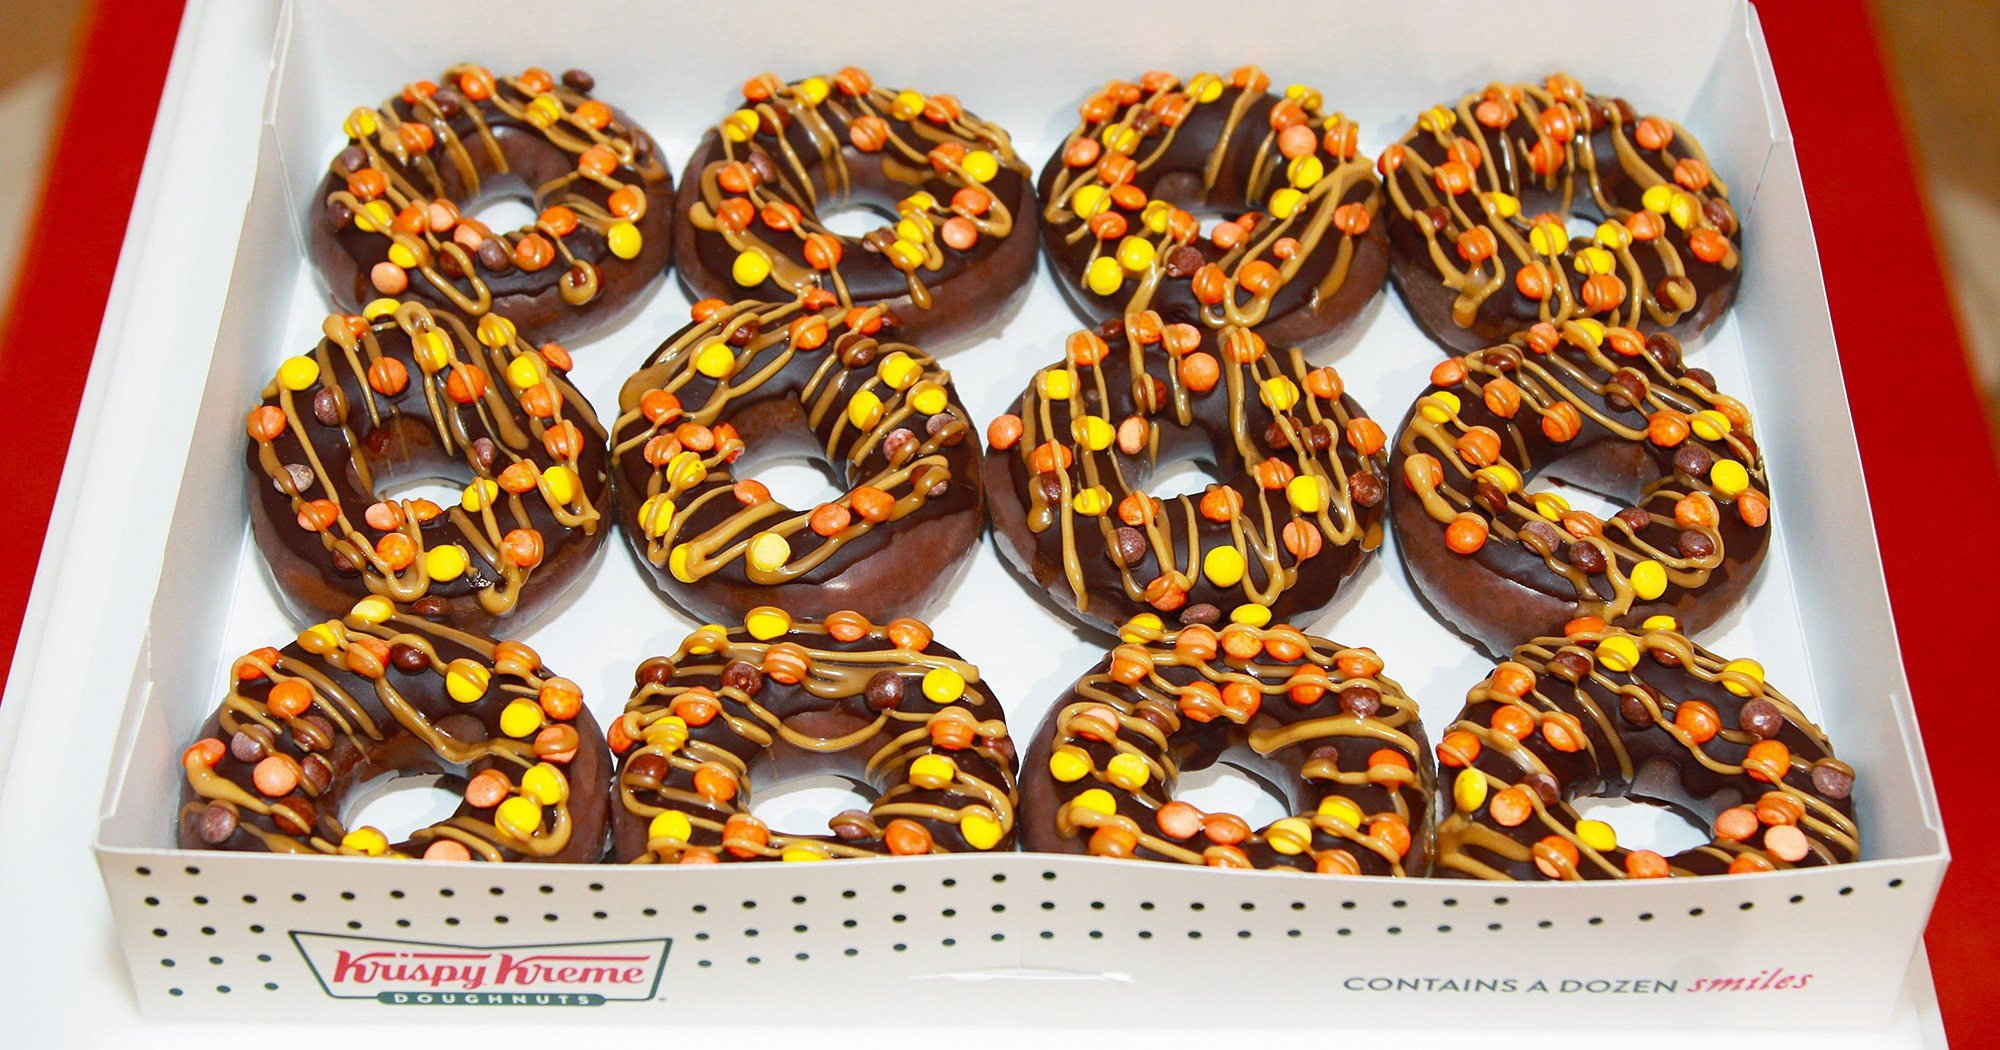 Krispy Kreme Reese's Outrageous Doughnut Is the First of Its Kind